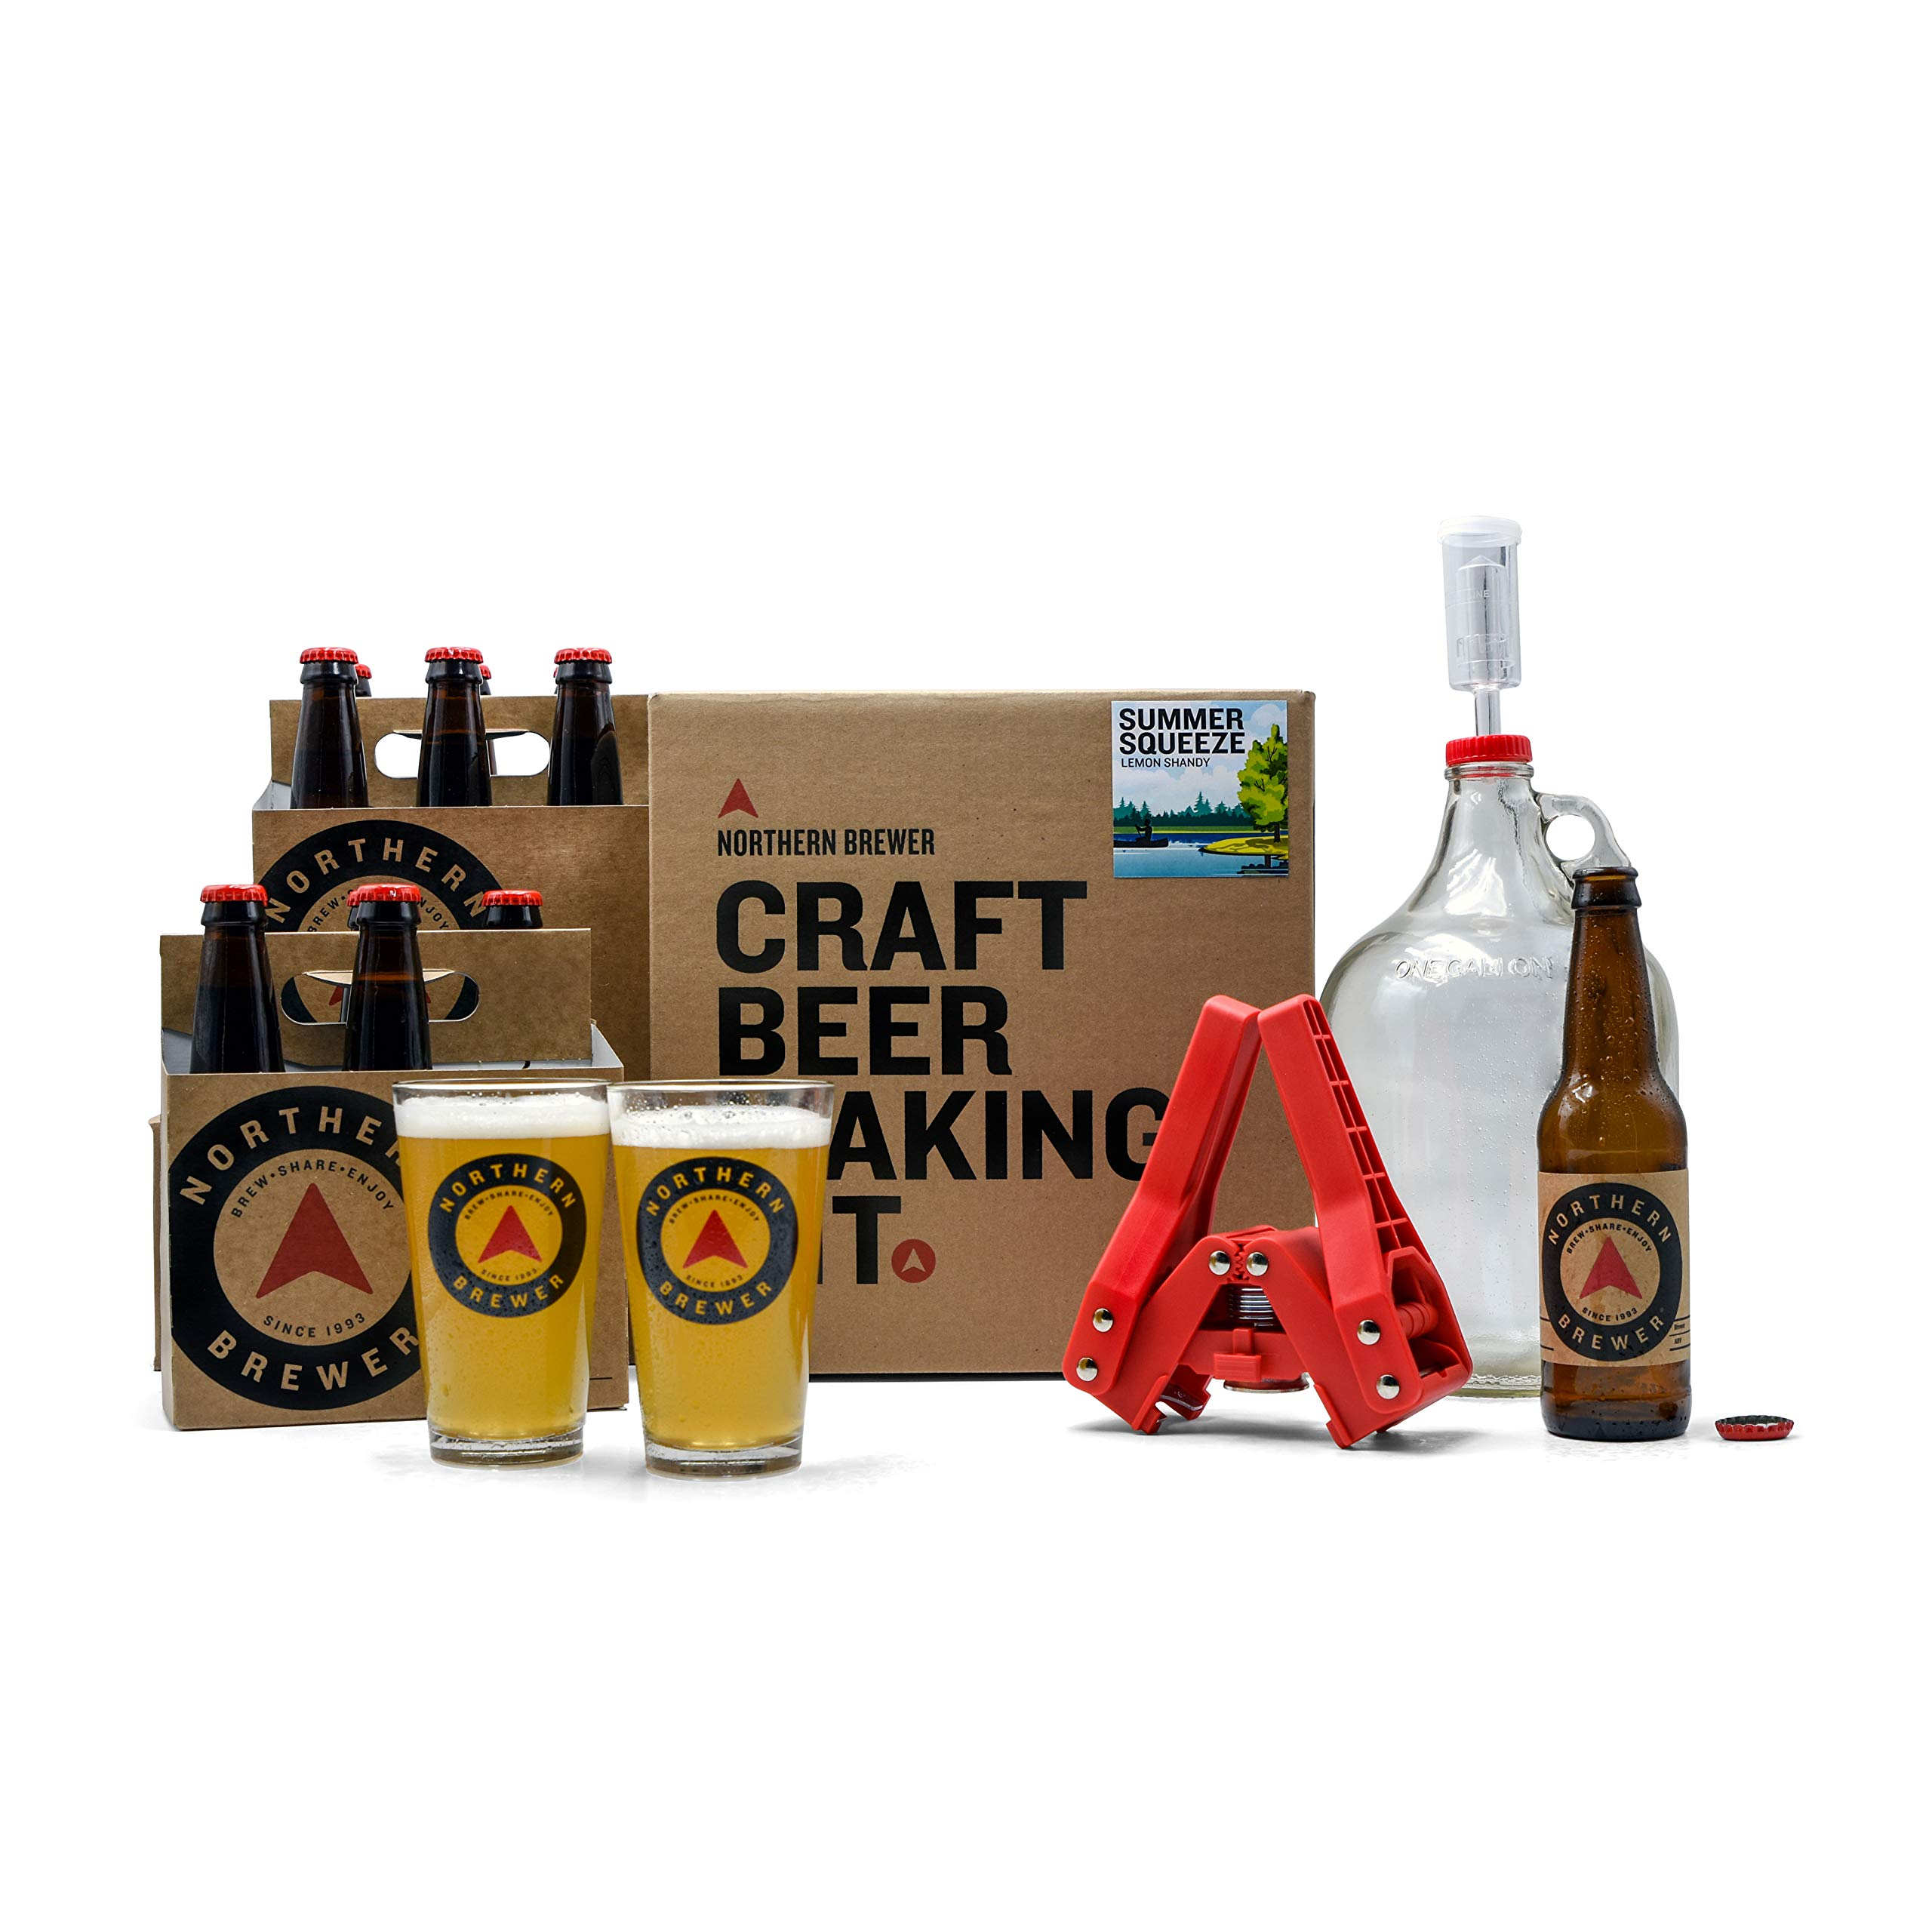 Northern Brewer - All Inclusive Gift Set 1 Gallon Small Batch HomeBrewing Starter Kit Equipment and Recipe For Making Homemade Beer Para Hacer Cerveza Artesanal (Limited Edition Summer Squeeze Shandy)